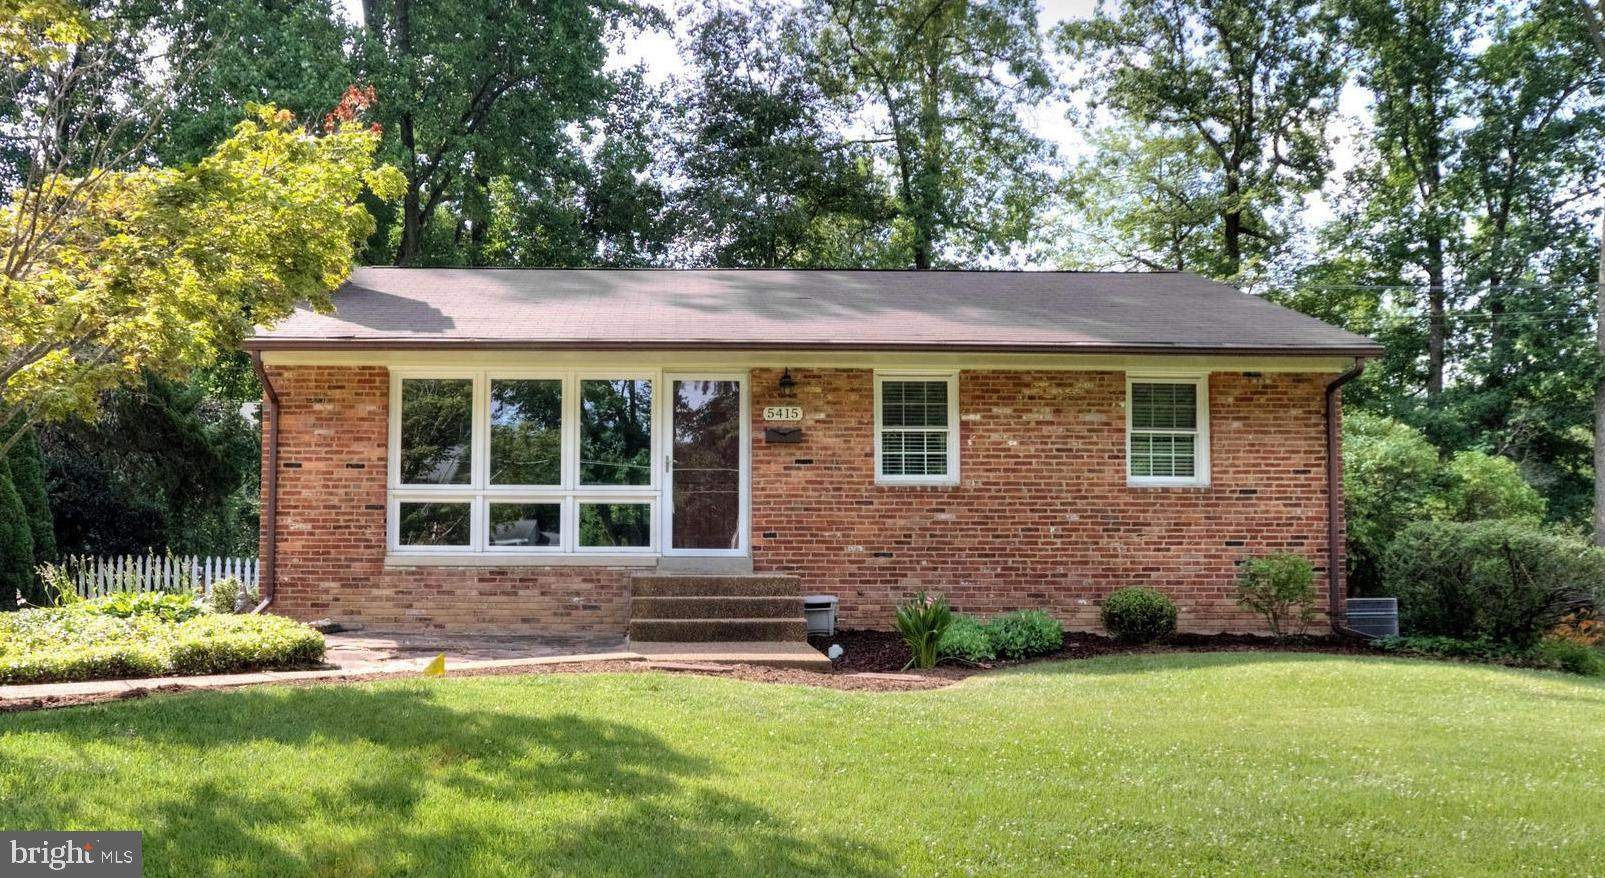 Meticulous owners cared for this 4 bedroom and 2 bathroom home!Tap into your inner chef in the new kitchen with stainless steel appliances, gas oven, custom cabinets, and granite countertops.Spend the night in and gather around the fireplace in the family room on the main level or the fireplace in the living room in the basement.  Perfect for game nights!Lower level includes a large laundry room, a bedroom, and a full bathroom for pristine comfort for your guests.Invite the neighbors over and grill out on your back patio!  Large backyard with a built in swing set is perfect for little ones to enjoy fun activities!Head to Lake Accotink that~s right around the corner for kayaking, mini golf, bike trails and much more!! Quick access to I-495, Braddock Road, I-395, and I-495.Easy commute to Washington D.C., Tysons Corner, and Fort Belvoir.